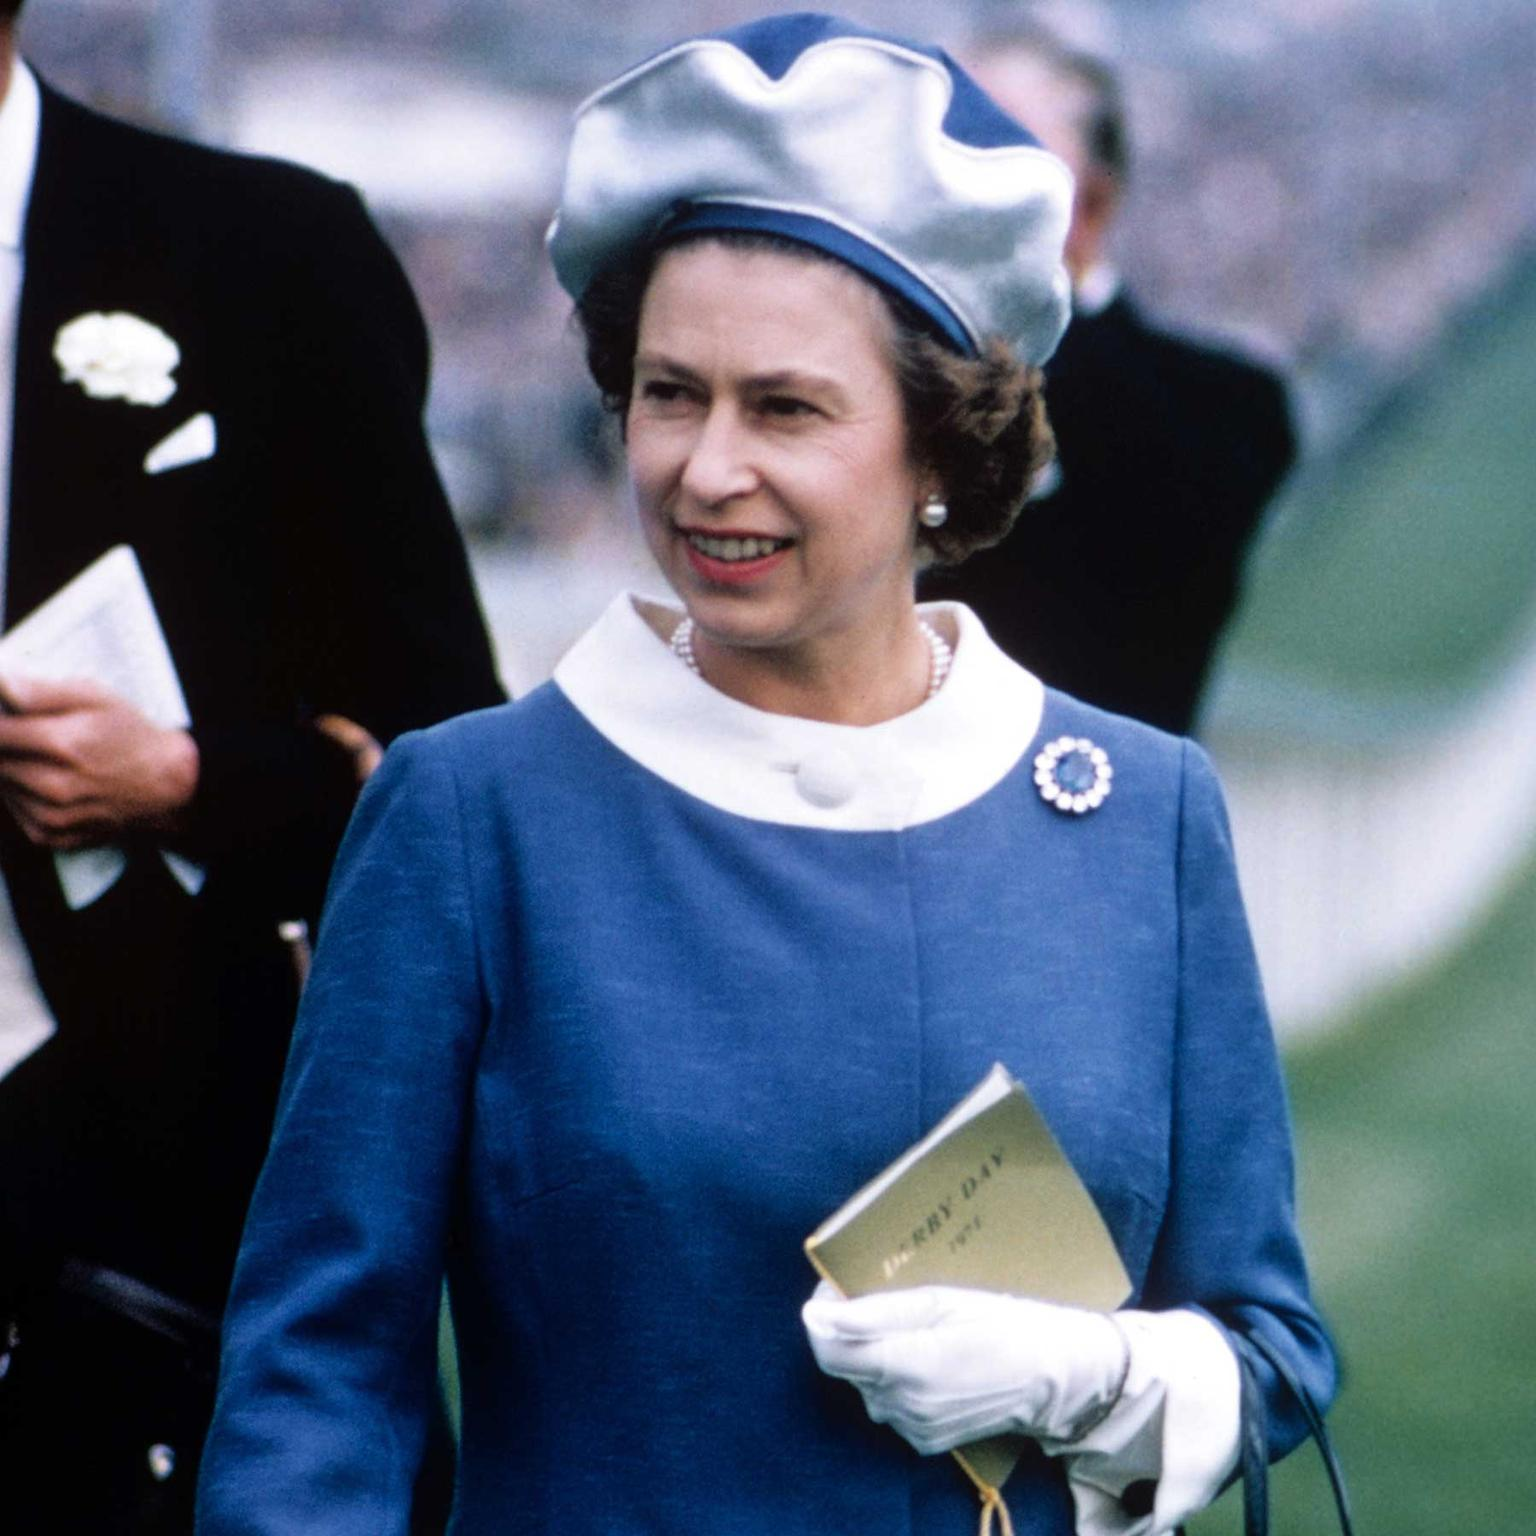 Queen Elizabeth II wearing the sapphire brooch that Princess Diana's engagement ring resembled. (Photo credit: Getty Images)